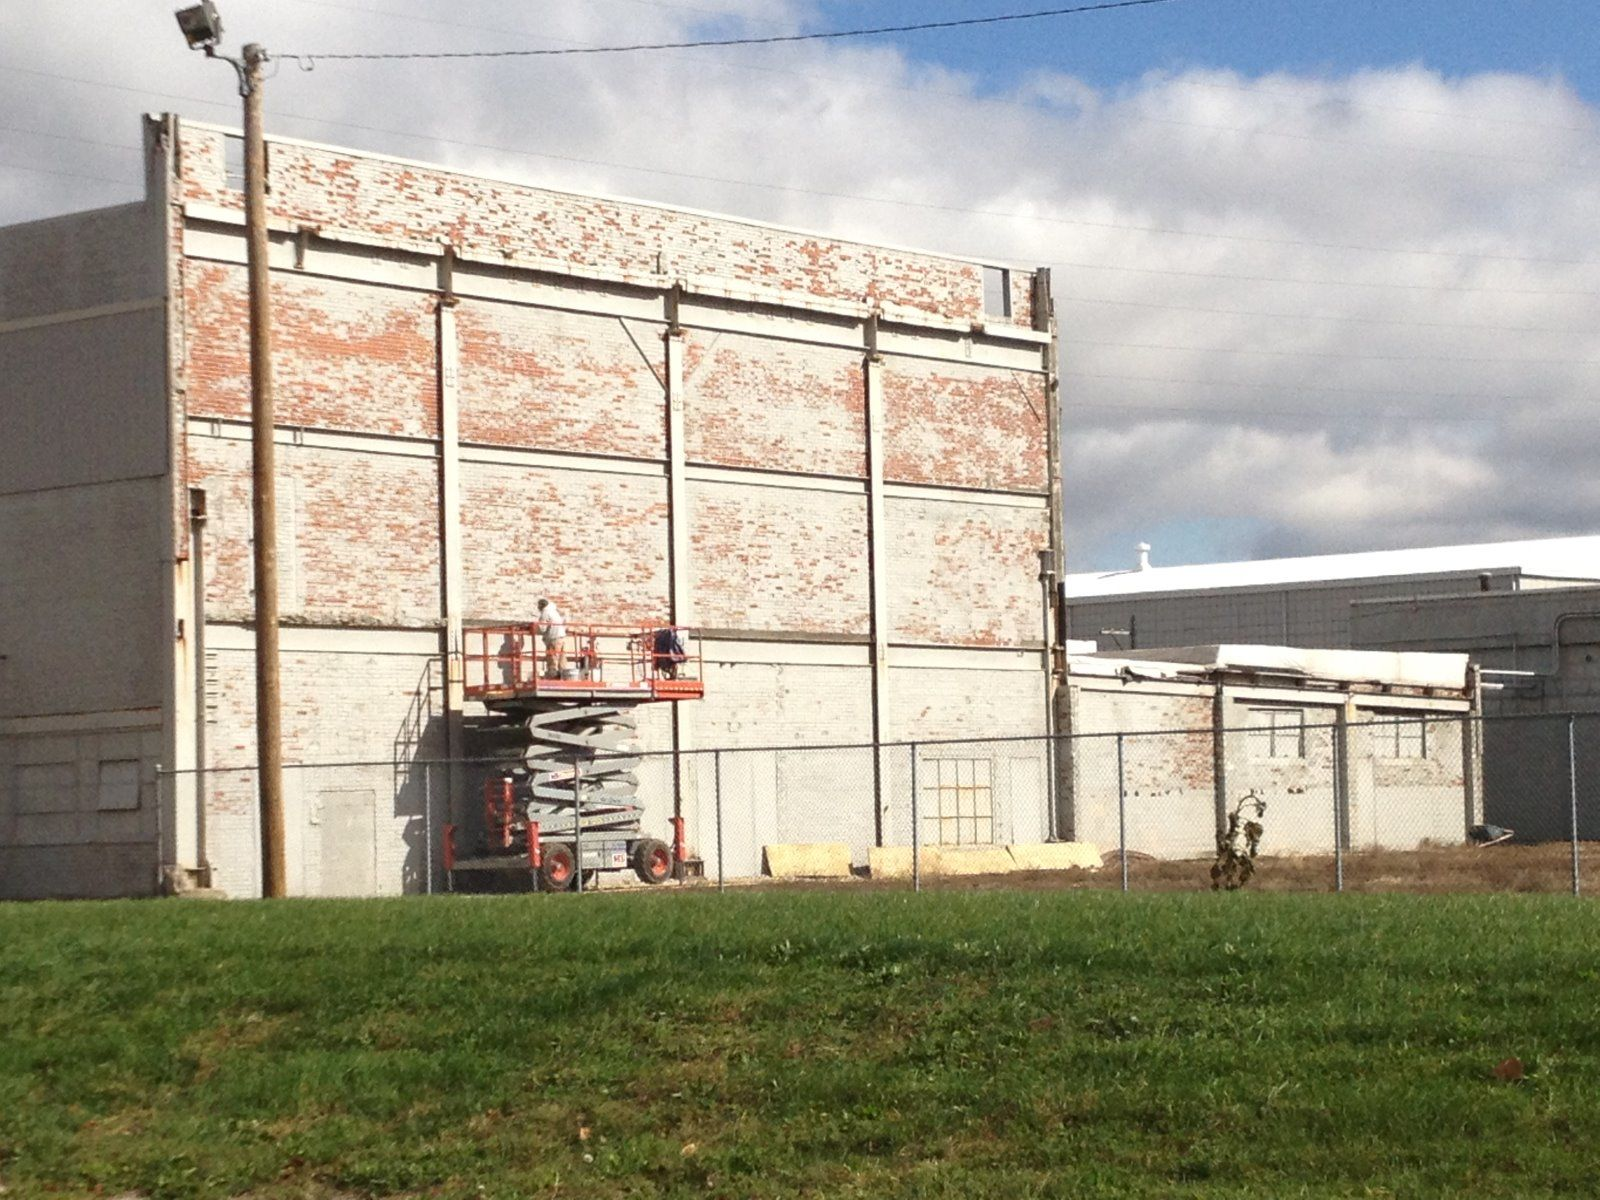 Historic, Warehouse - Indiana - Masonry Brick Replacement and Repair-tuck-point